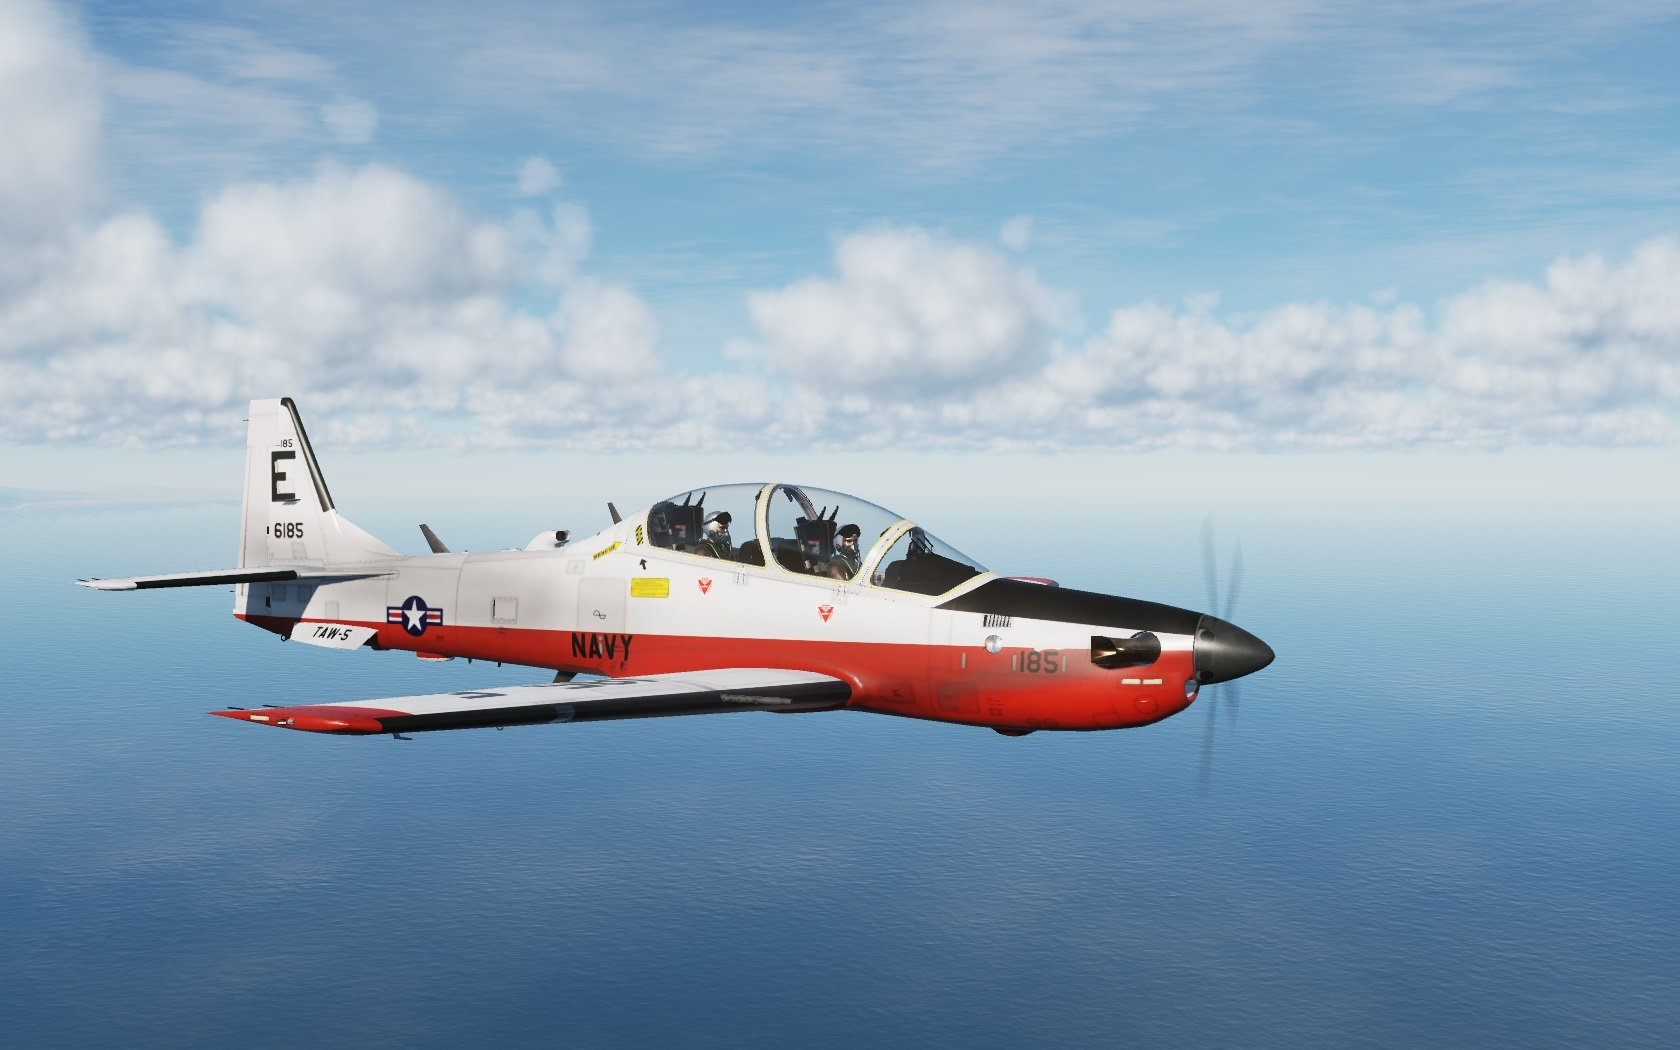 Ficticional T6-B Texan II US NAVY for A29b Tucano Mod